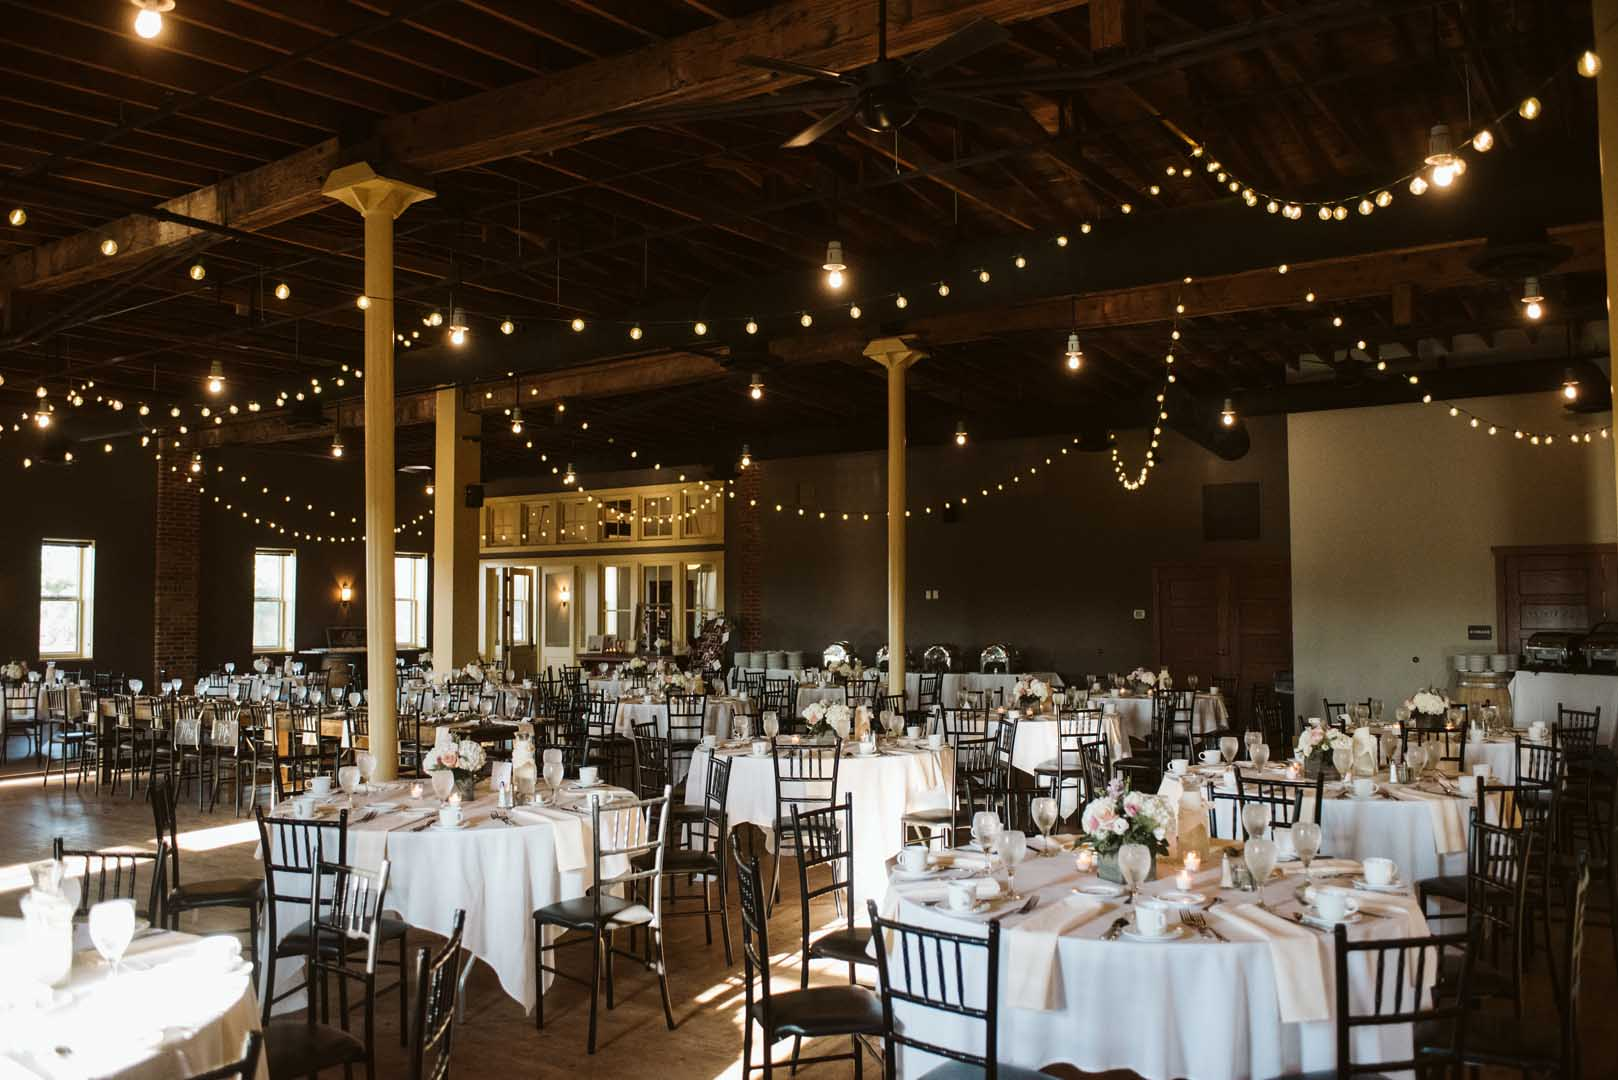 Event center at cannon river winery decorated with lights and white table cloths